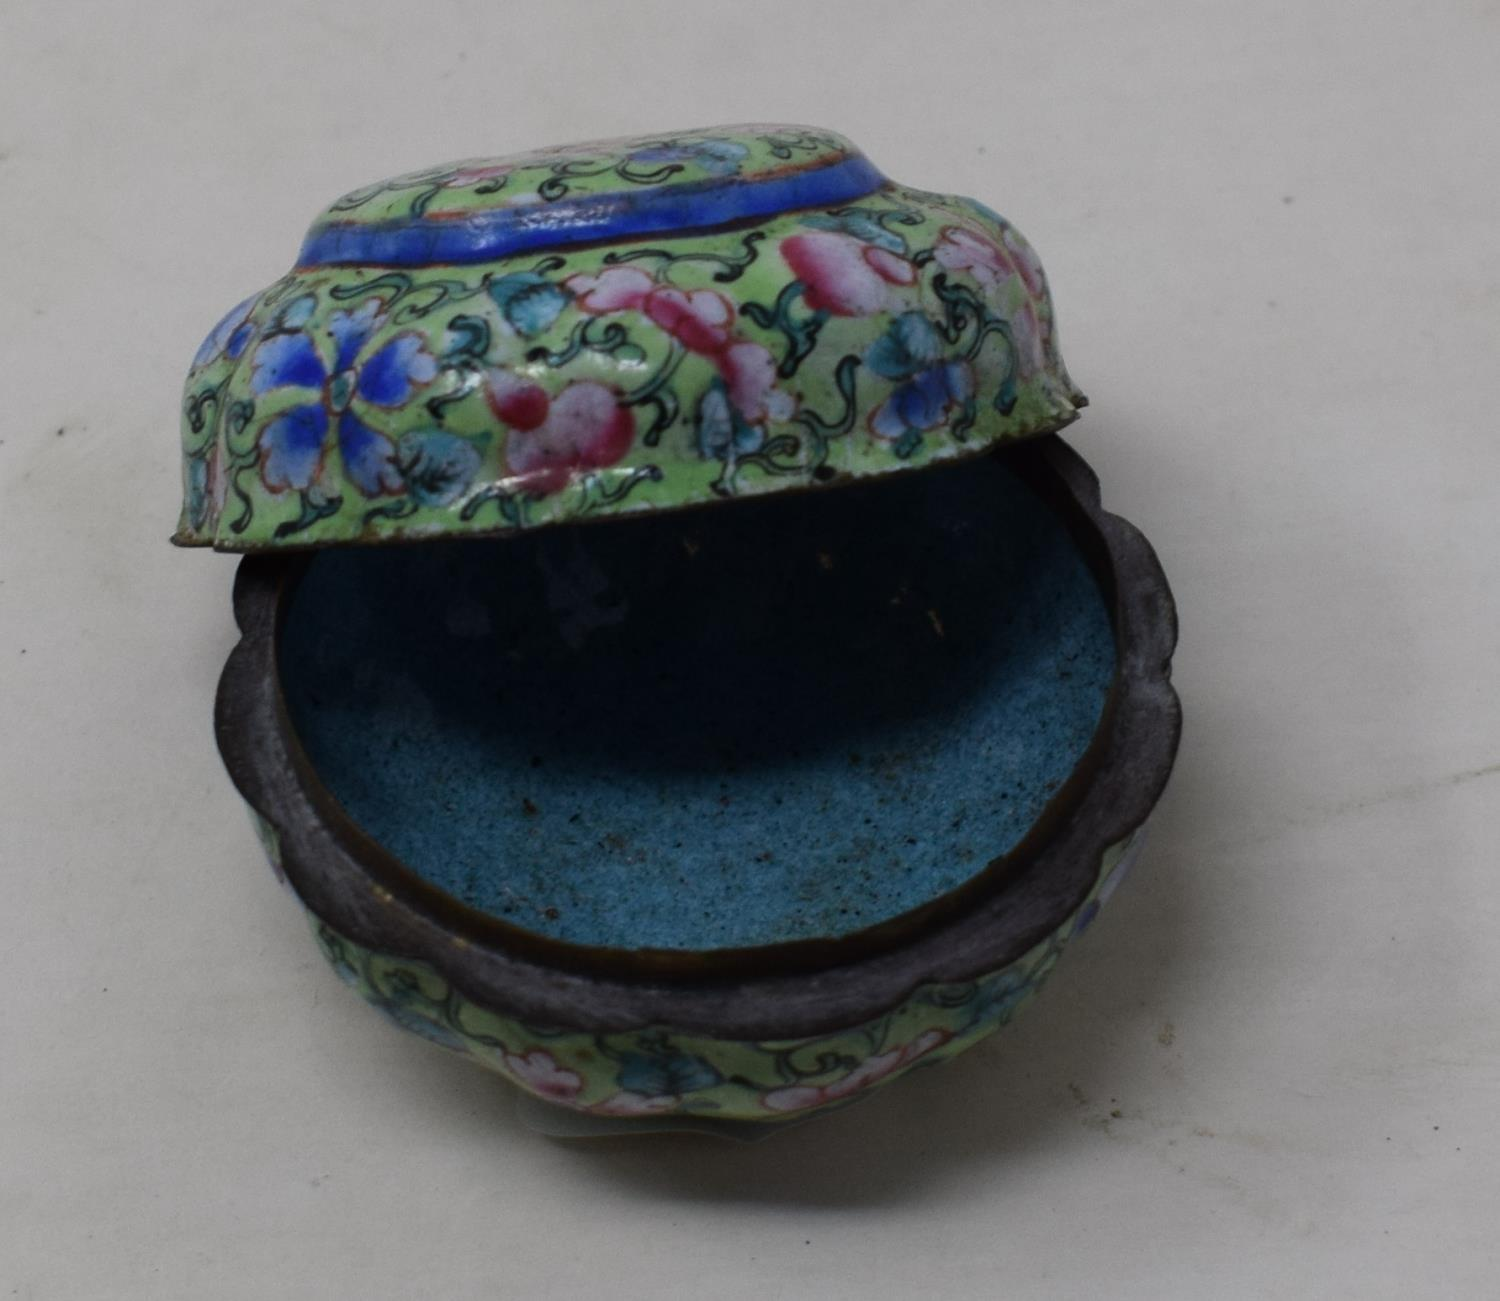 A Canton enamel pot and cover, decorated flowers on a green ground, 3 cm diameter - Image 5 of 5